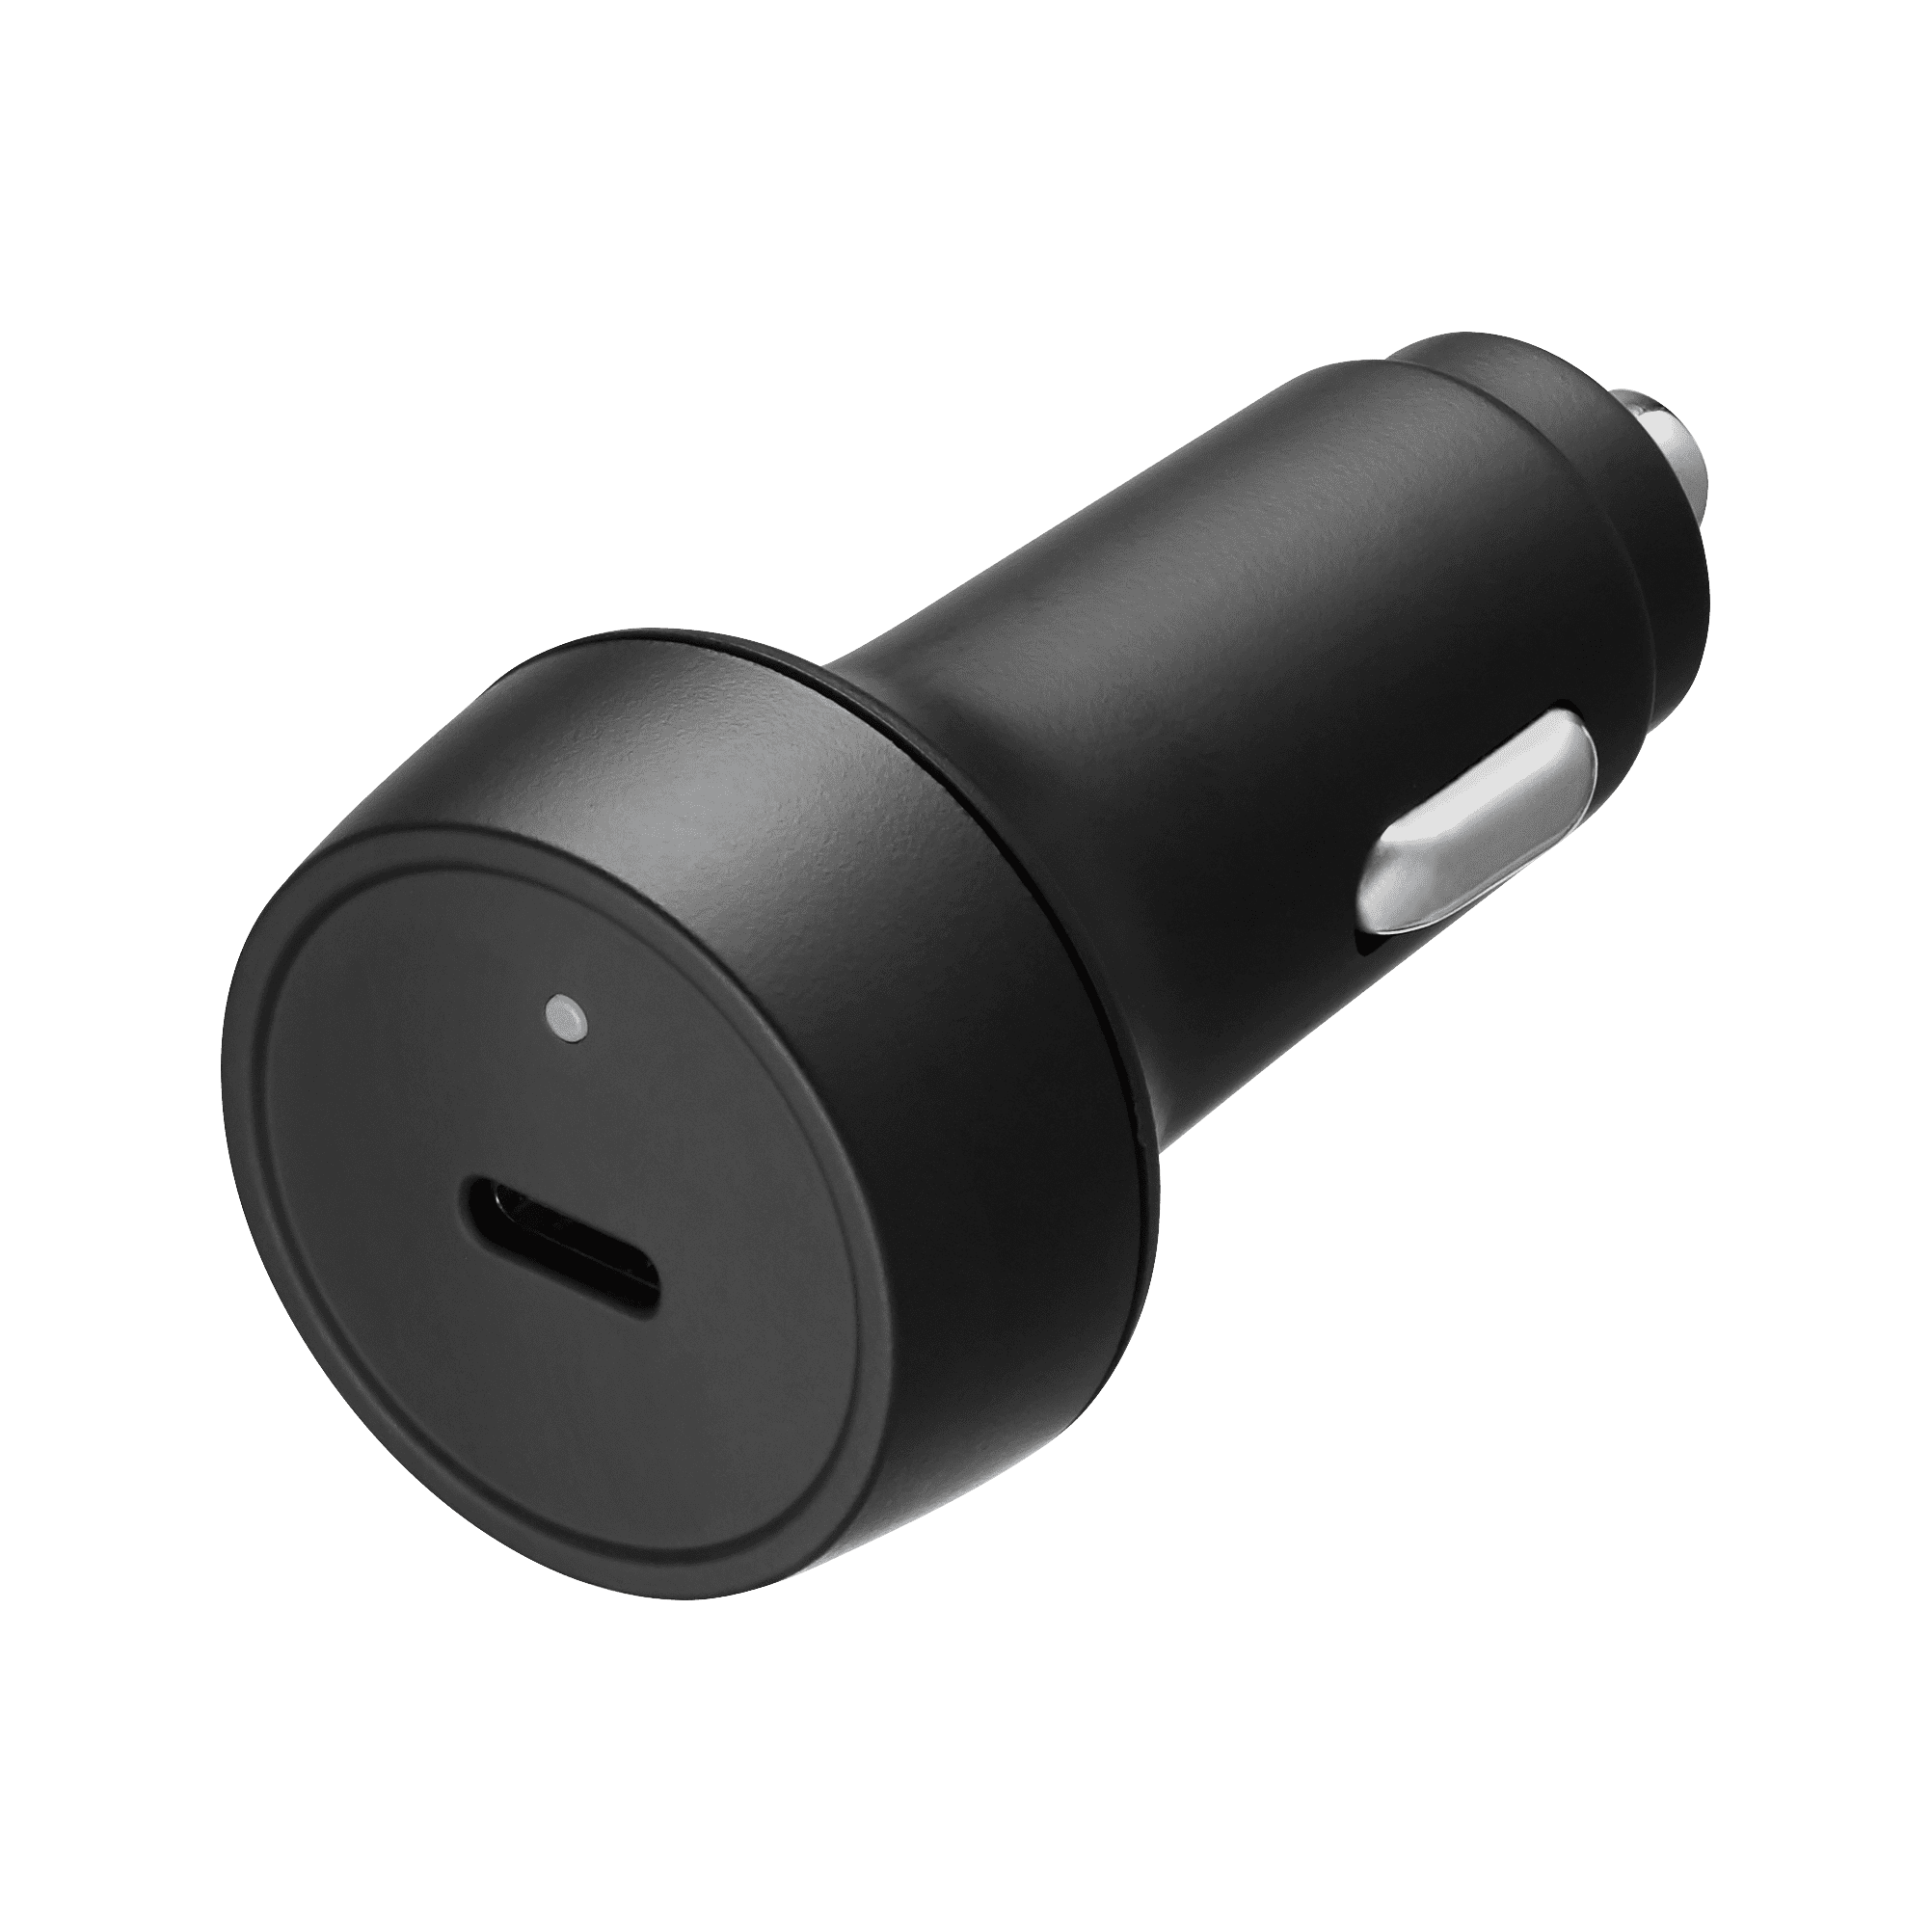 TPD-A18B (Black) Compact Car charger with LED Type-C 18W power delivery